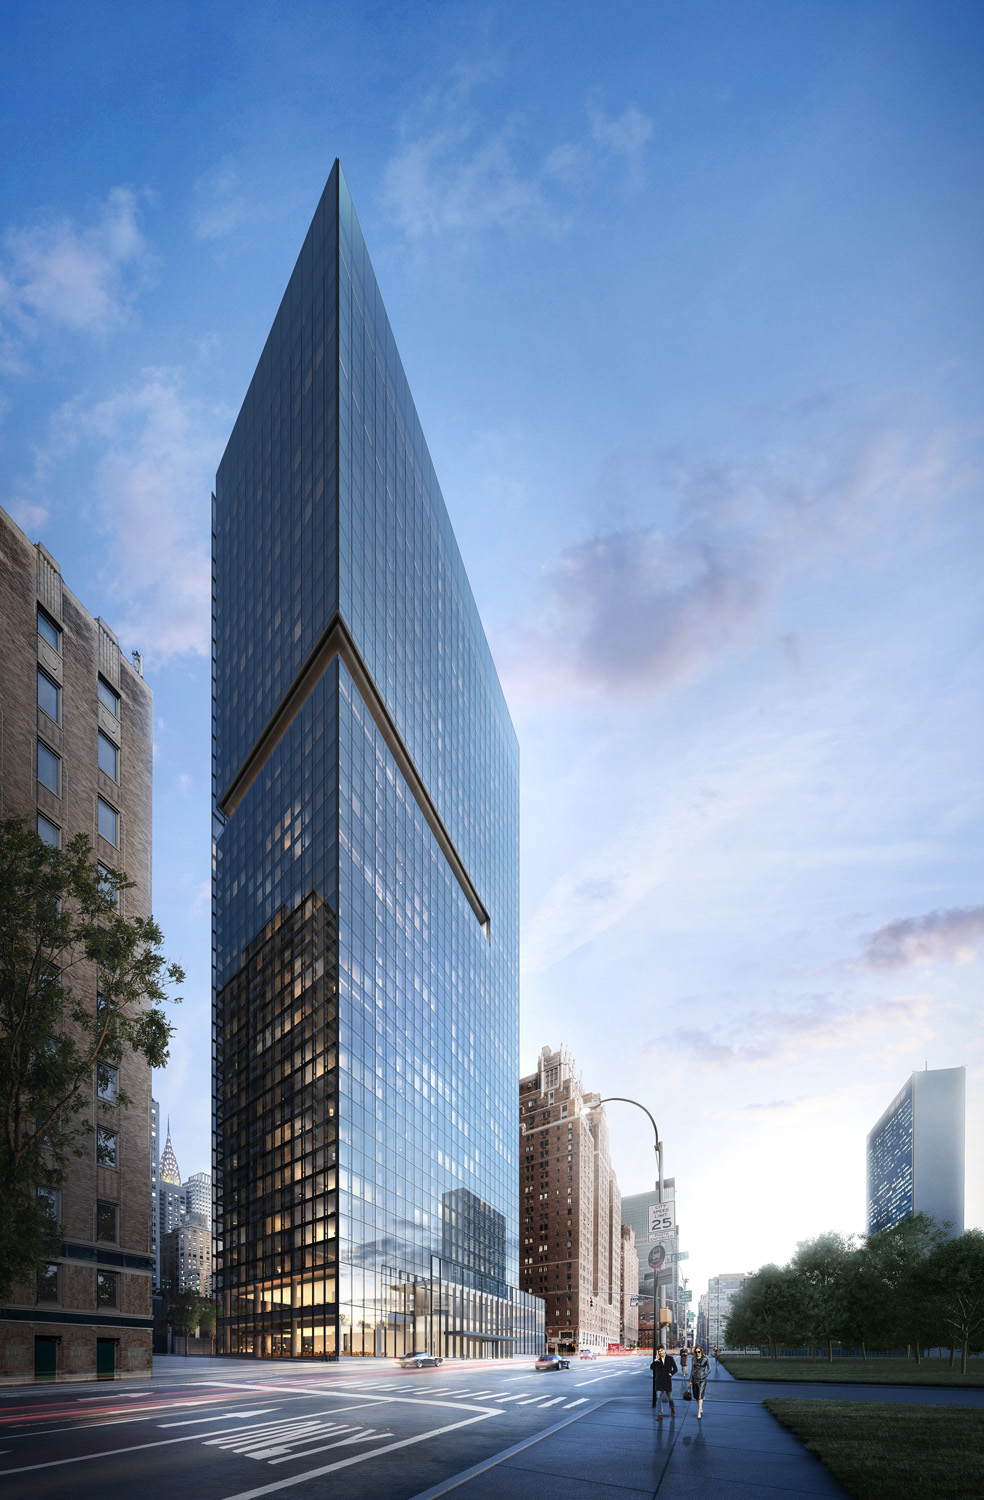 The Richard Meier-Designed 685 First Avenue Tops-Off On The East River